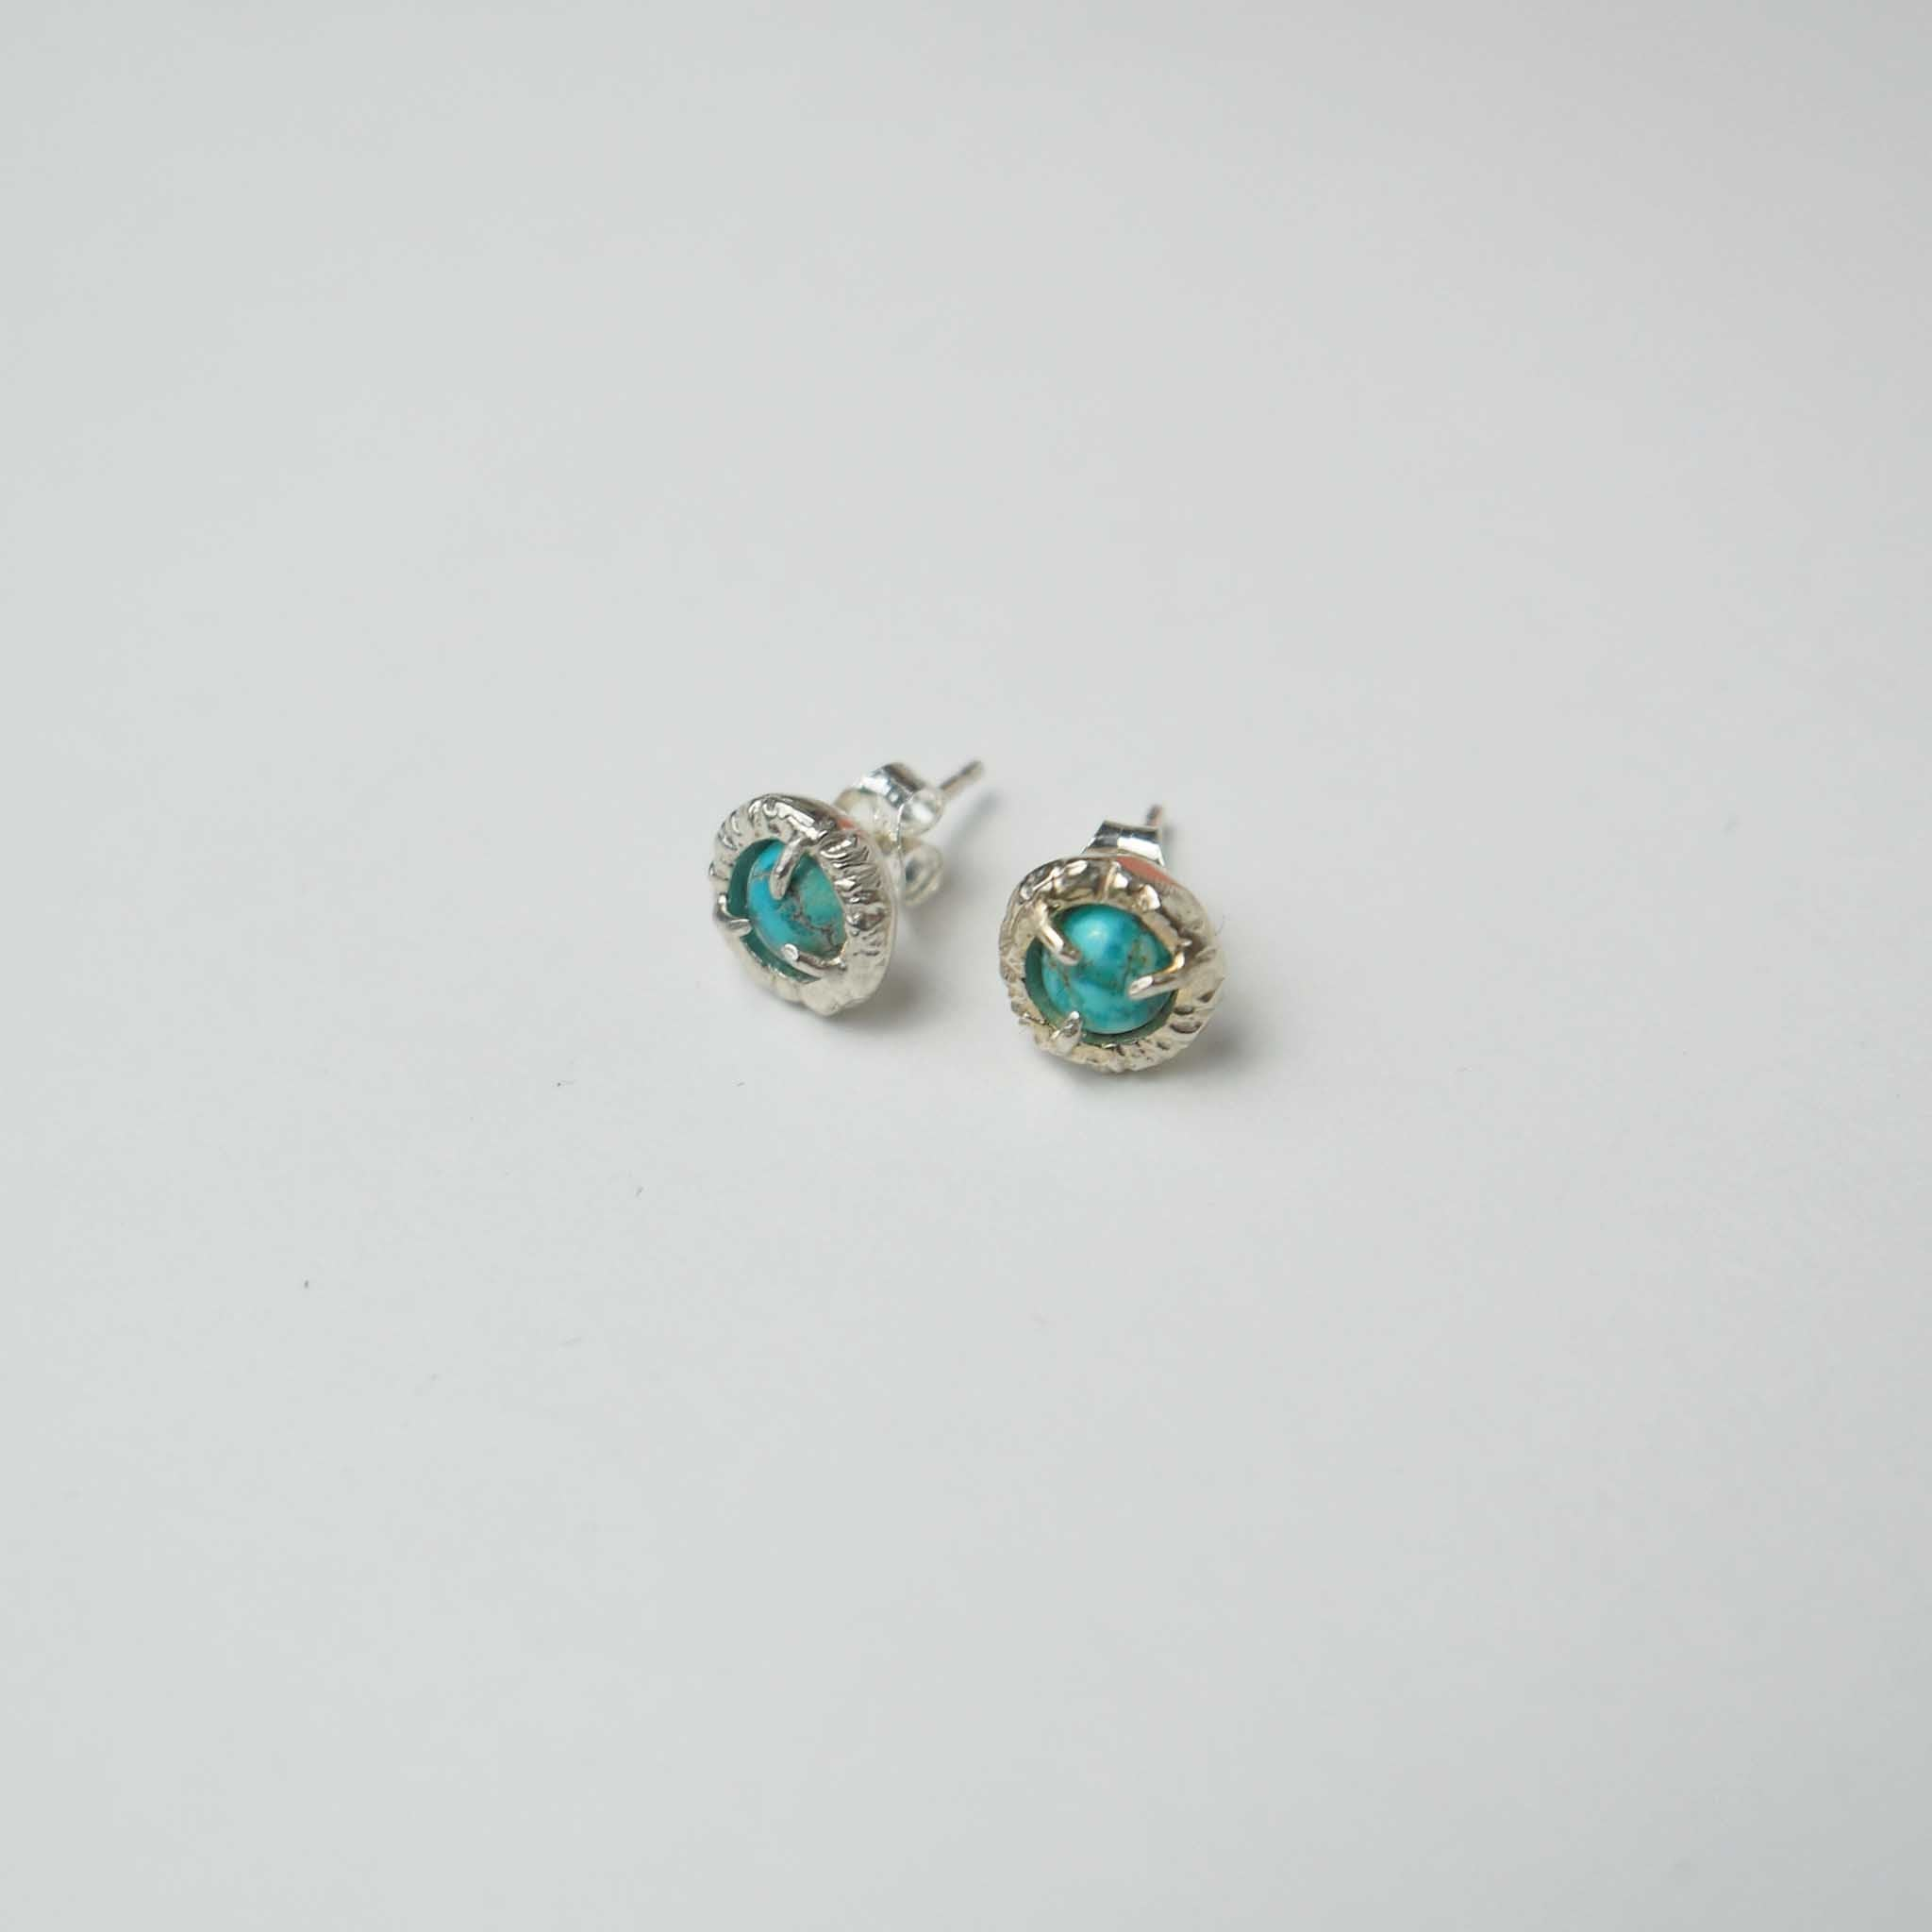 Jade Cove Earrings in Silver by Monica Squitieri